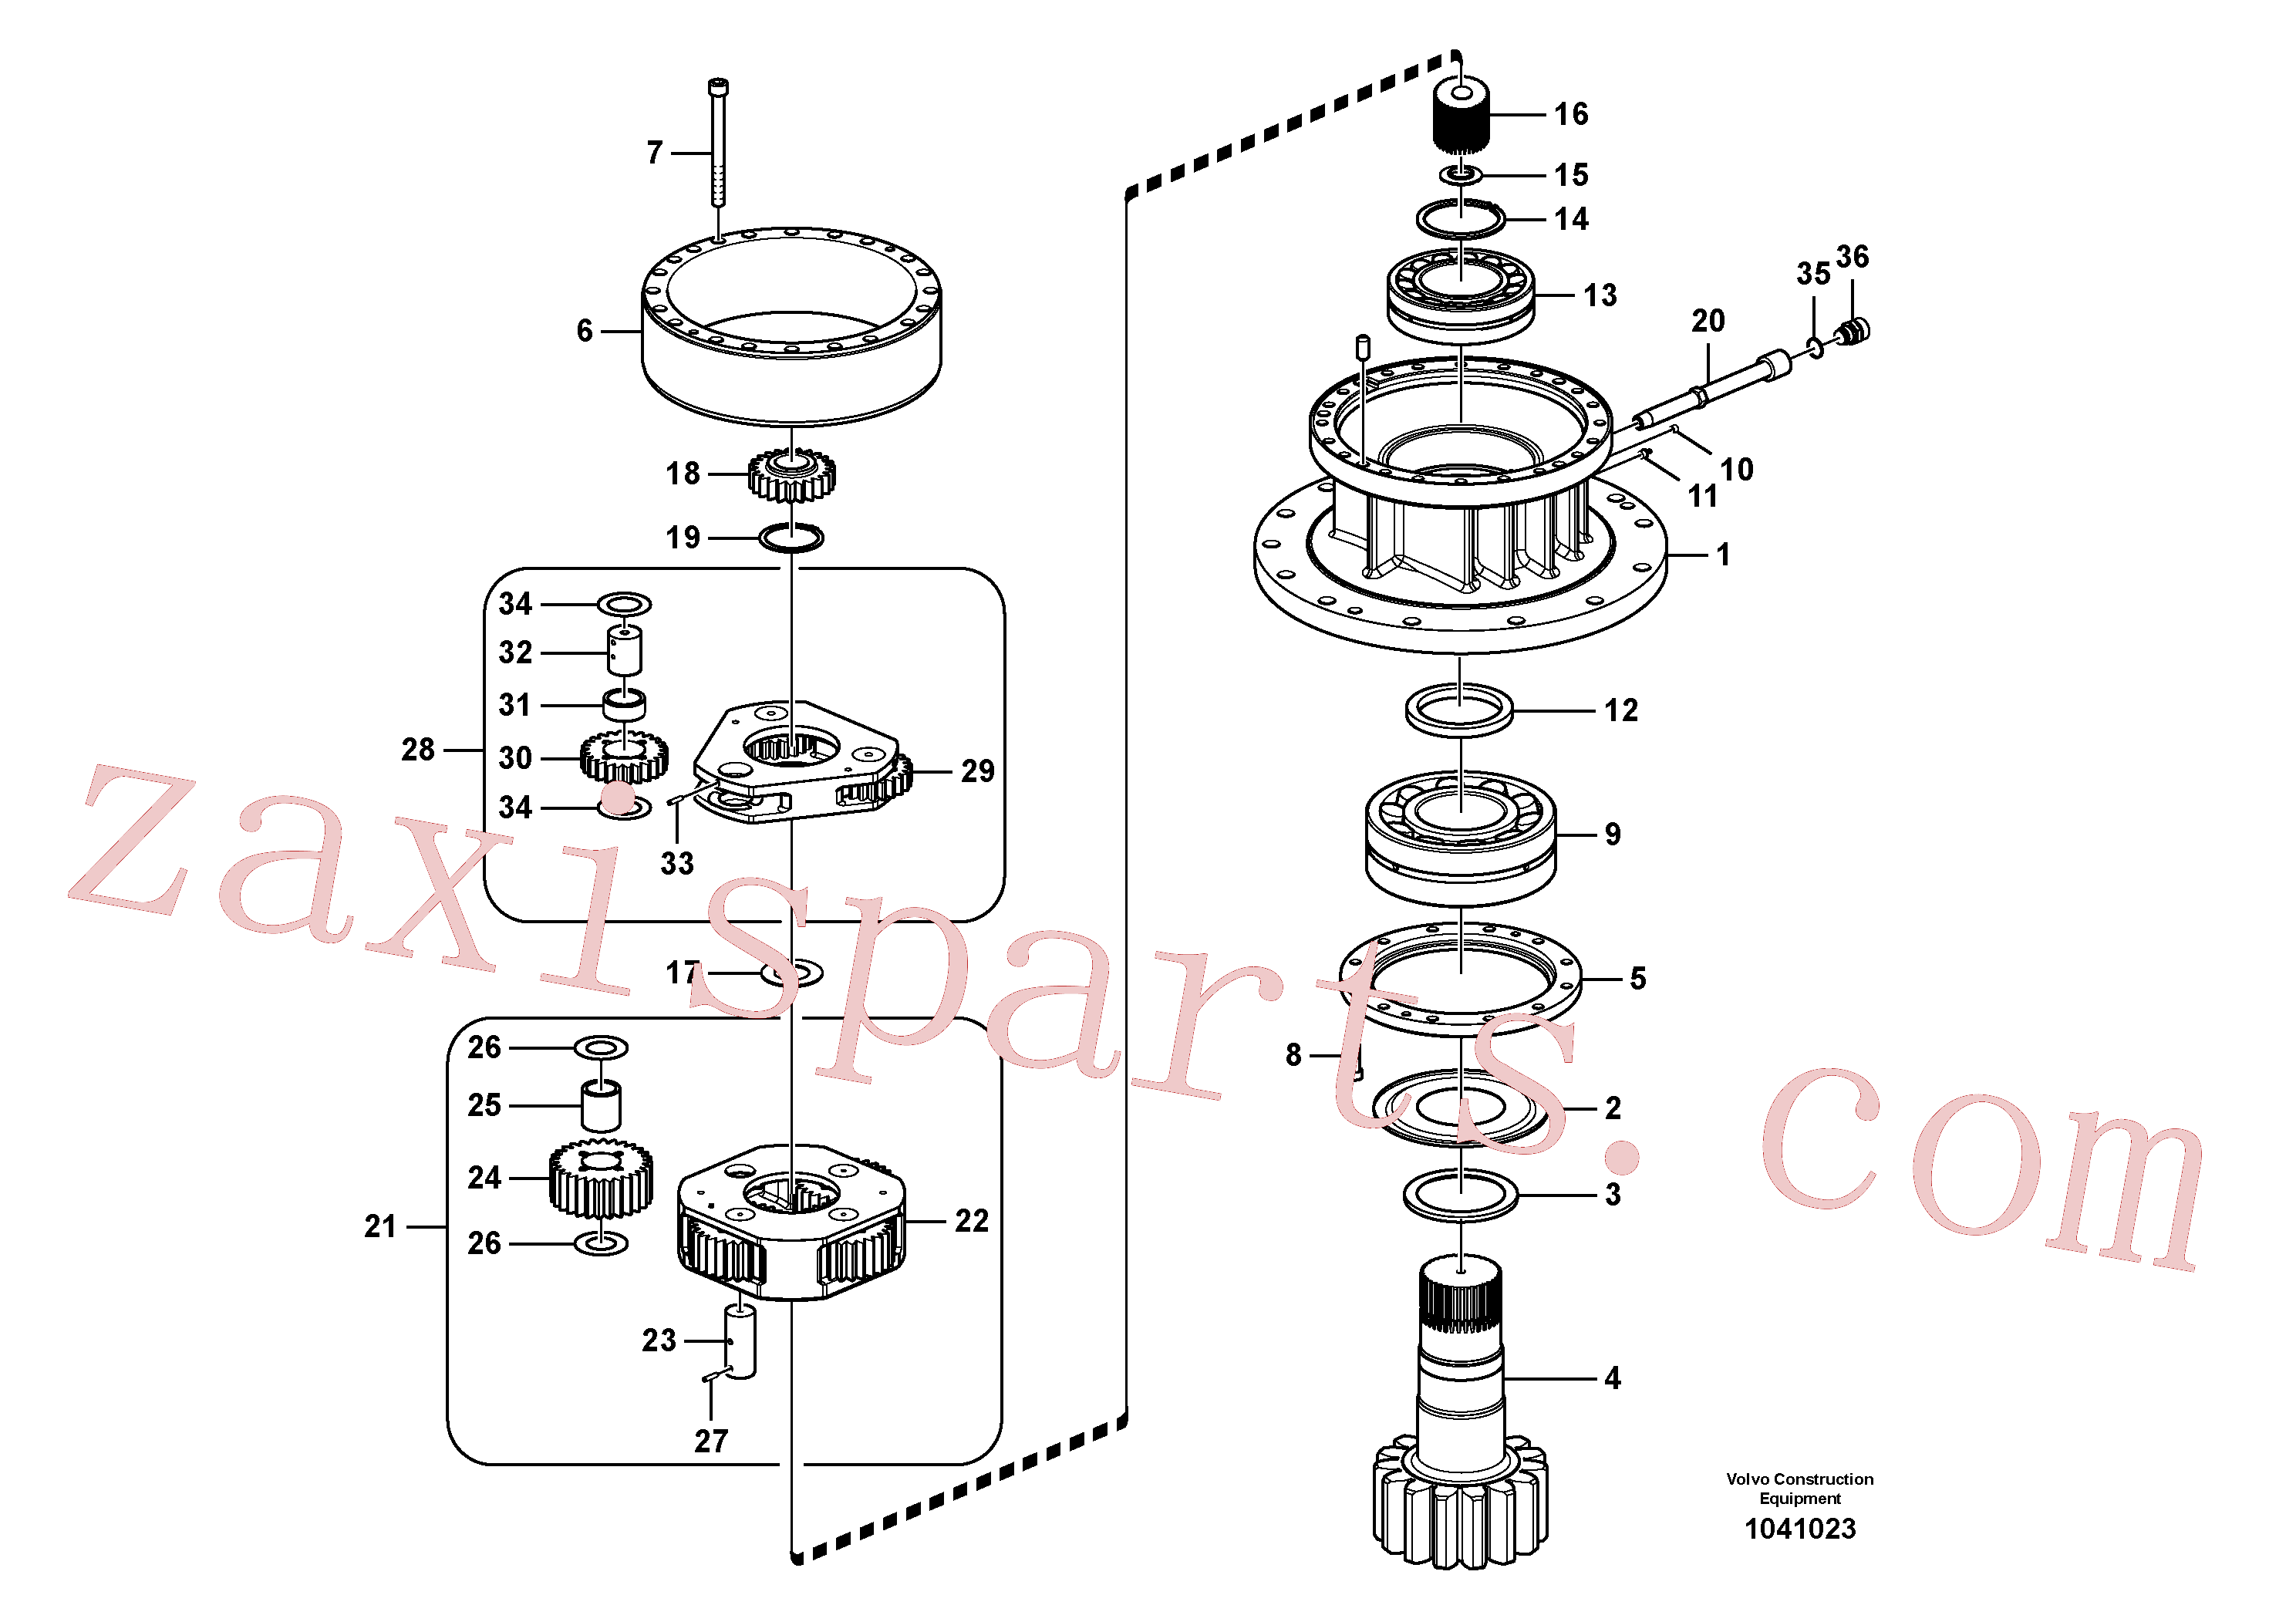 VOE14547277 for Volvo Swing gearbox(1070660 assembly)